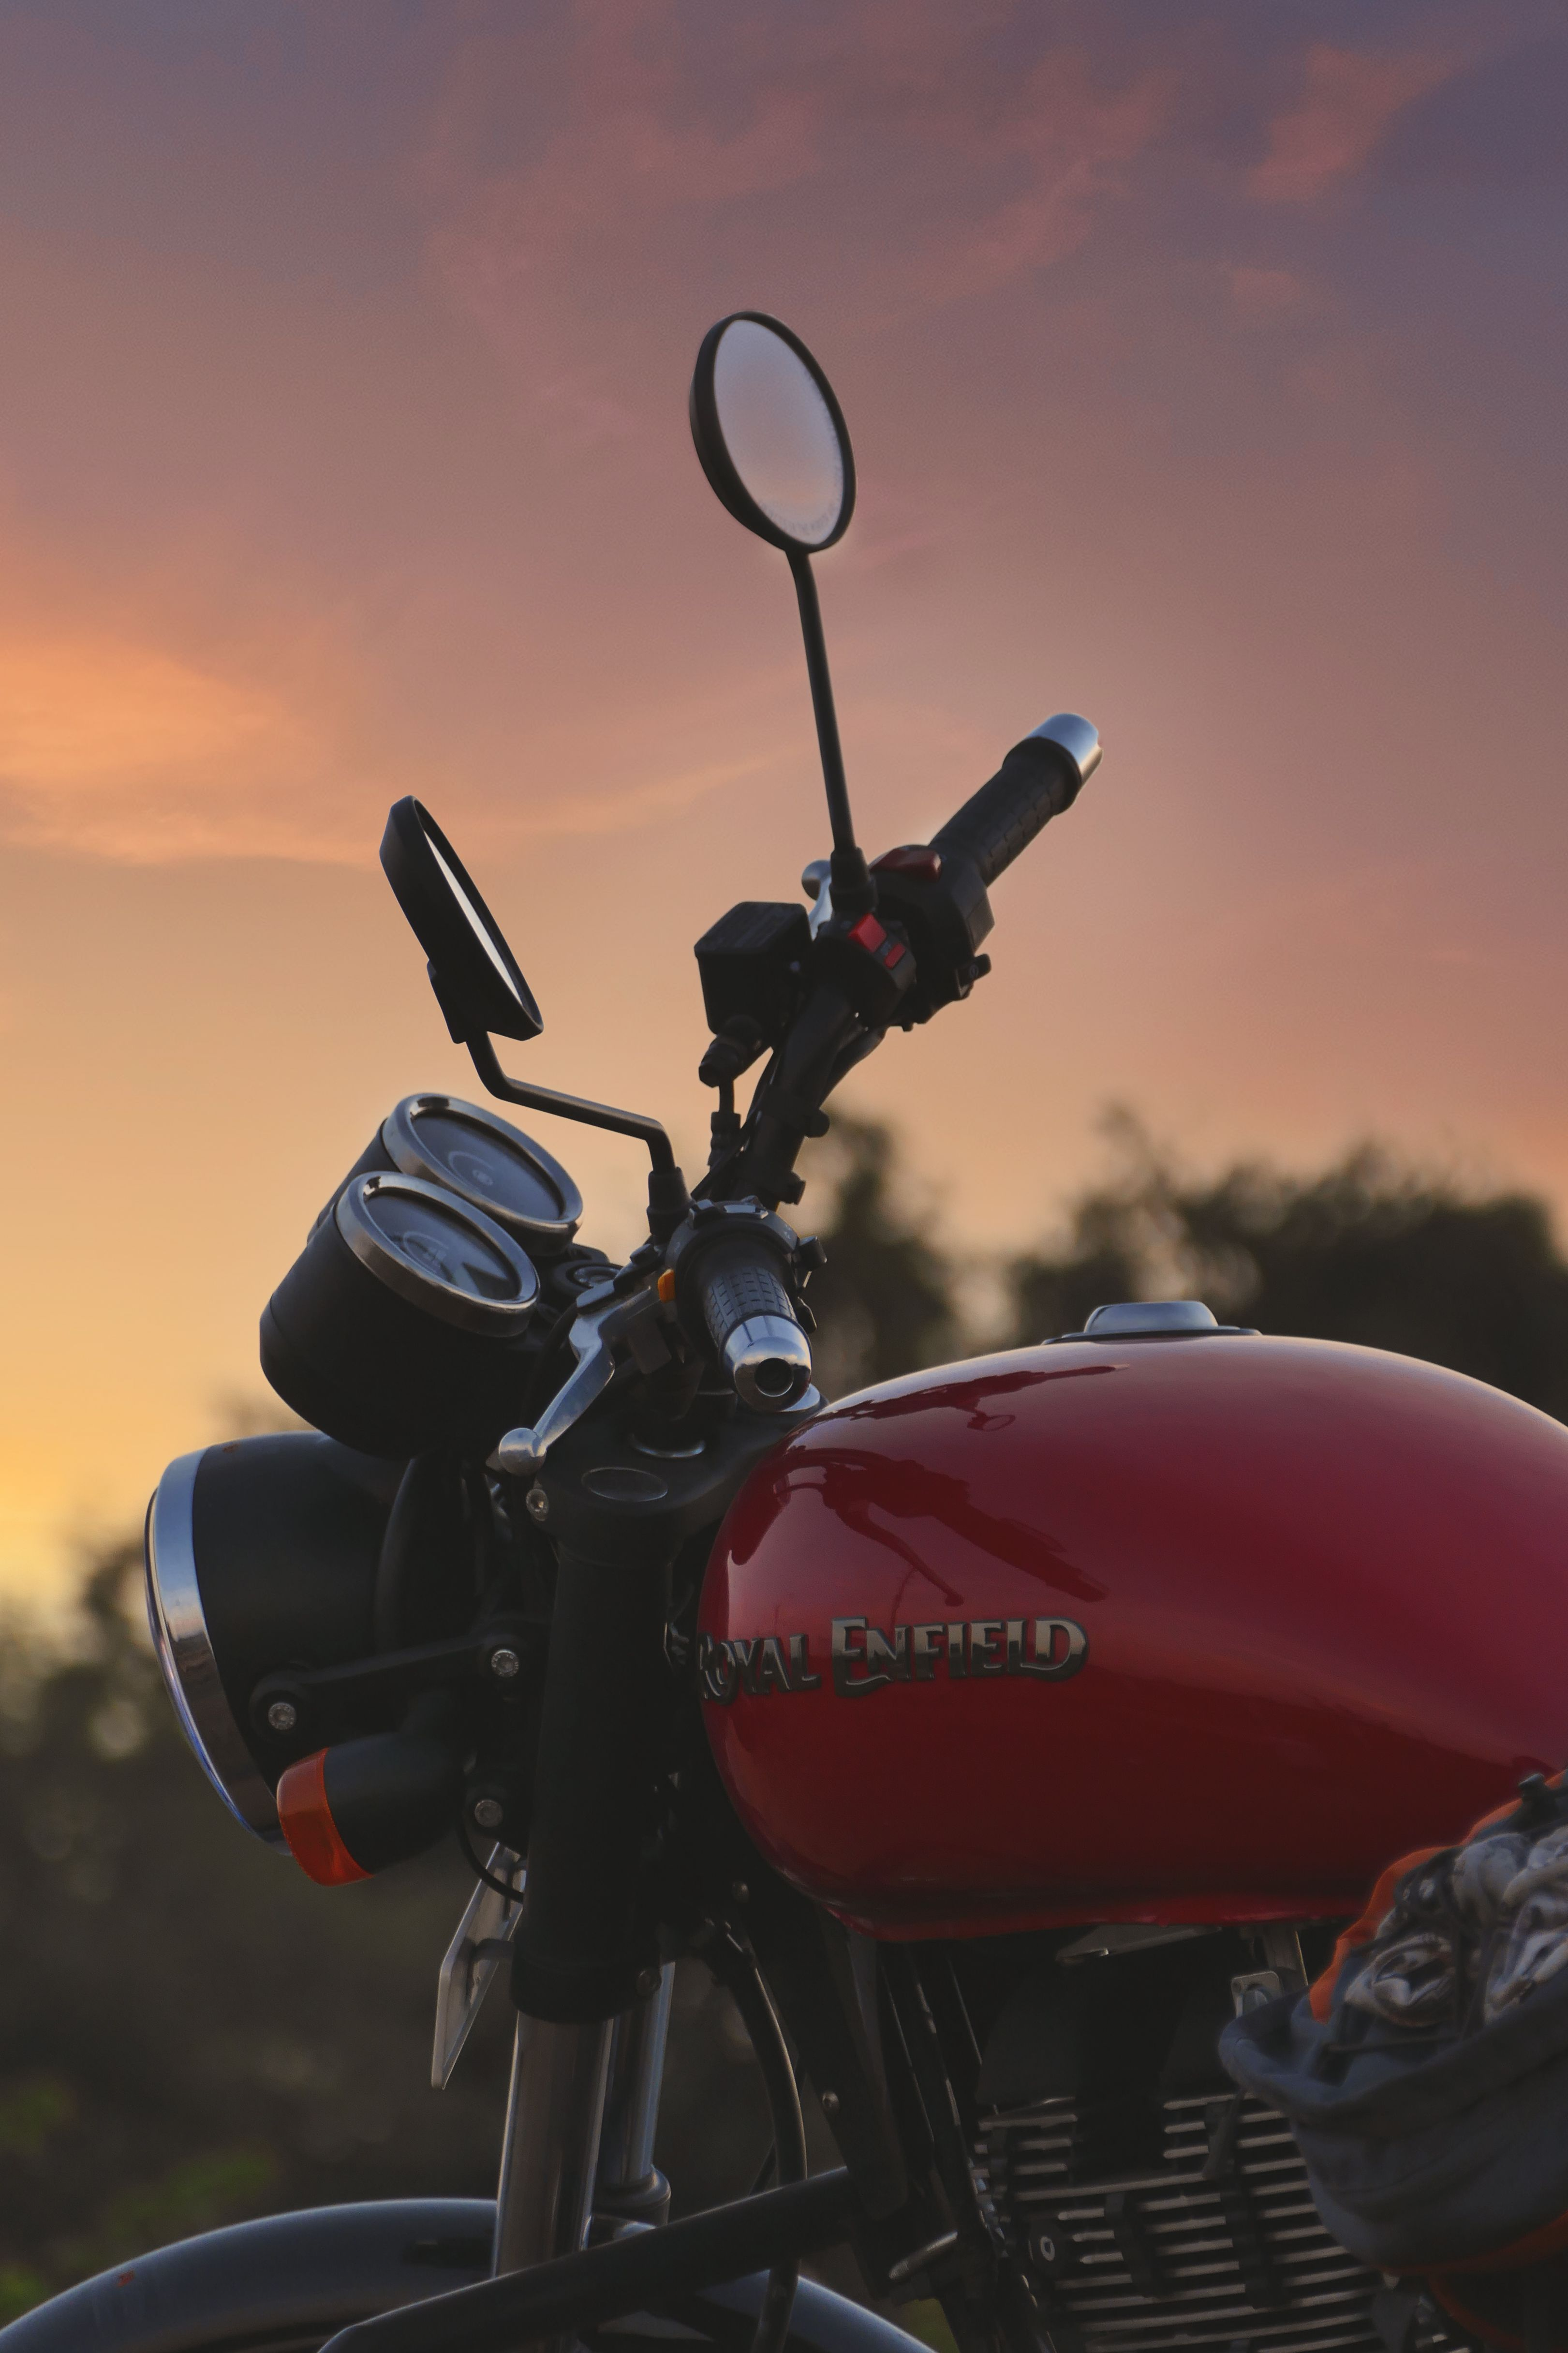 Royal Enfield Thunderbird X Bike Enfield Thunderbird Royal Enfield Wallpapers Royal Enfield Bullet